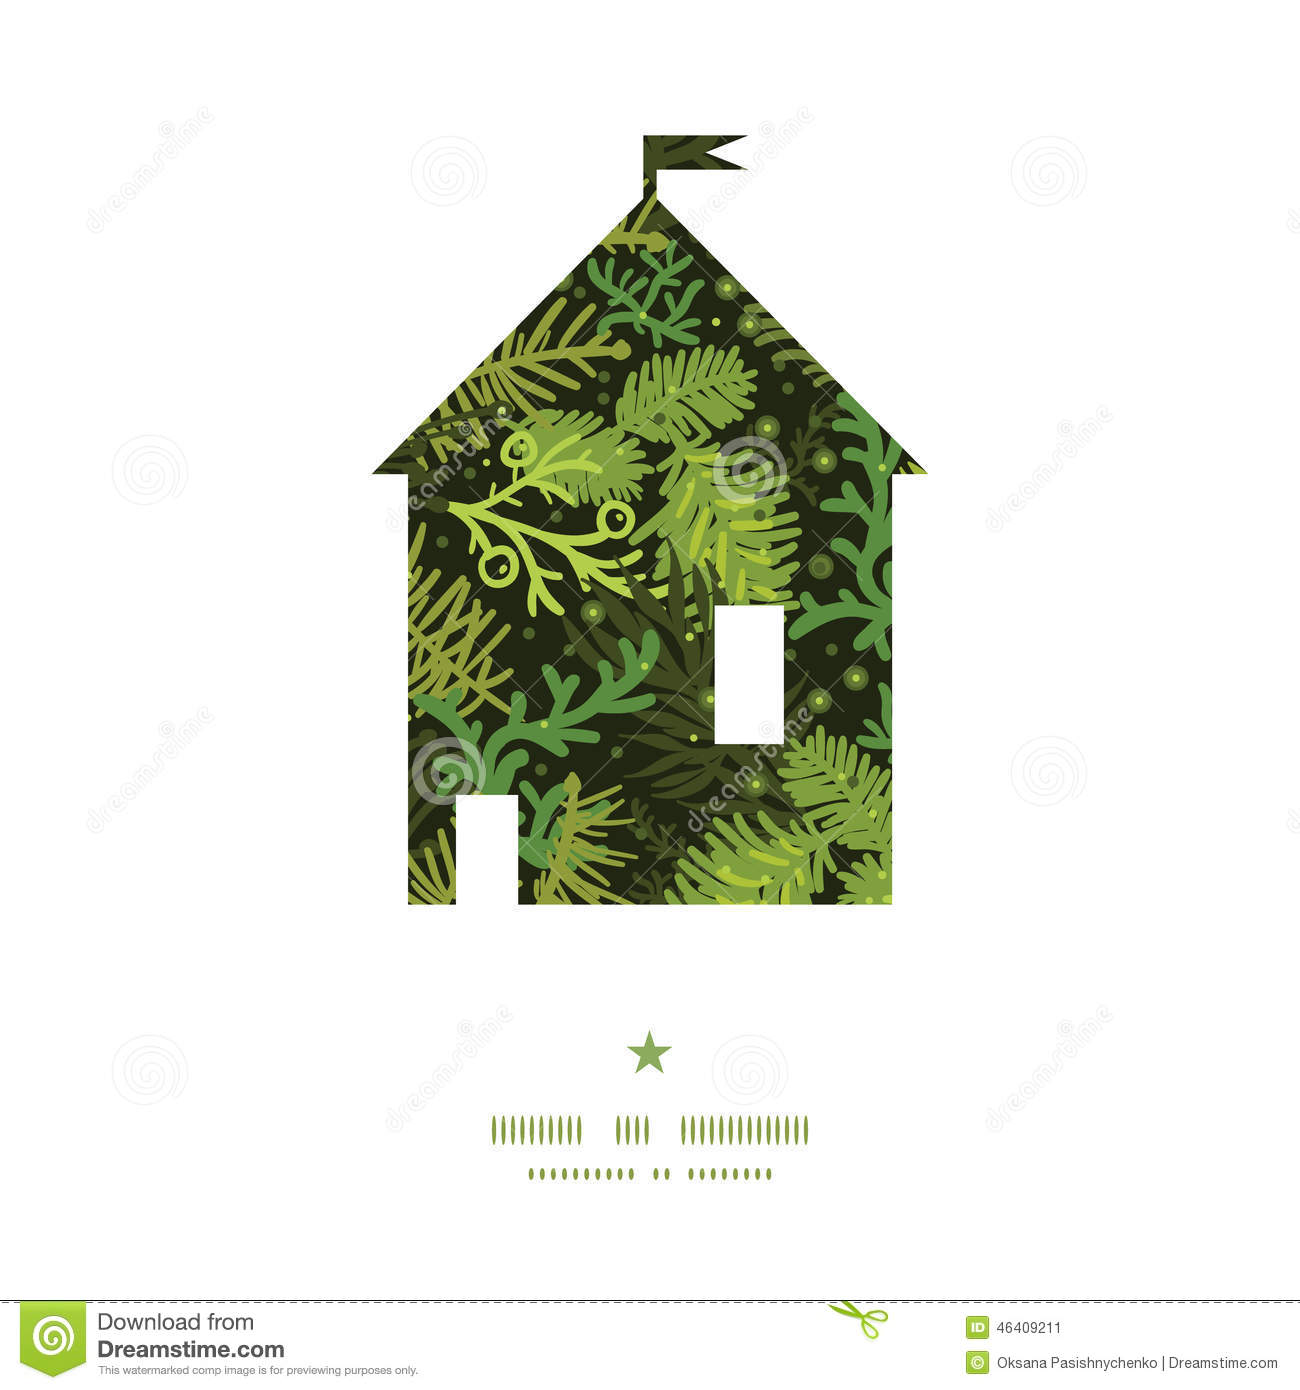 ^ Graphic designing house - Home design and style